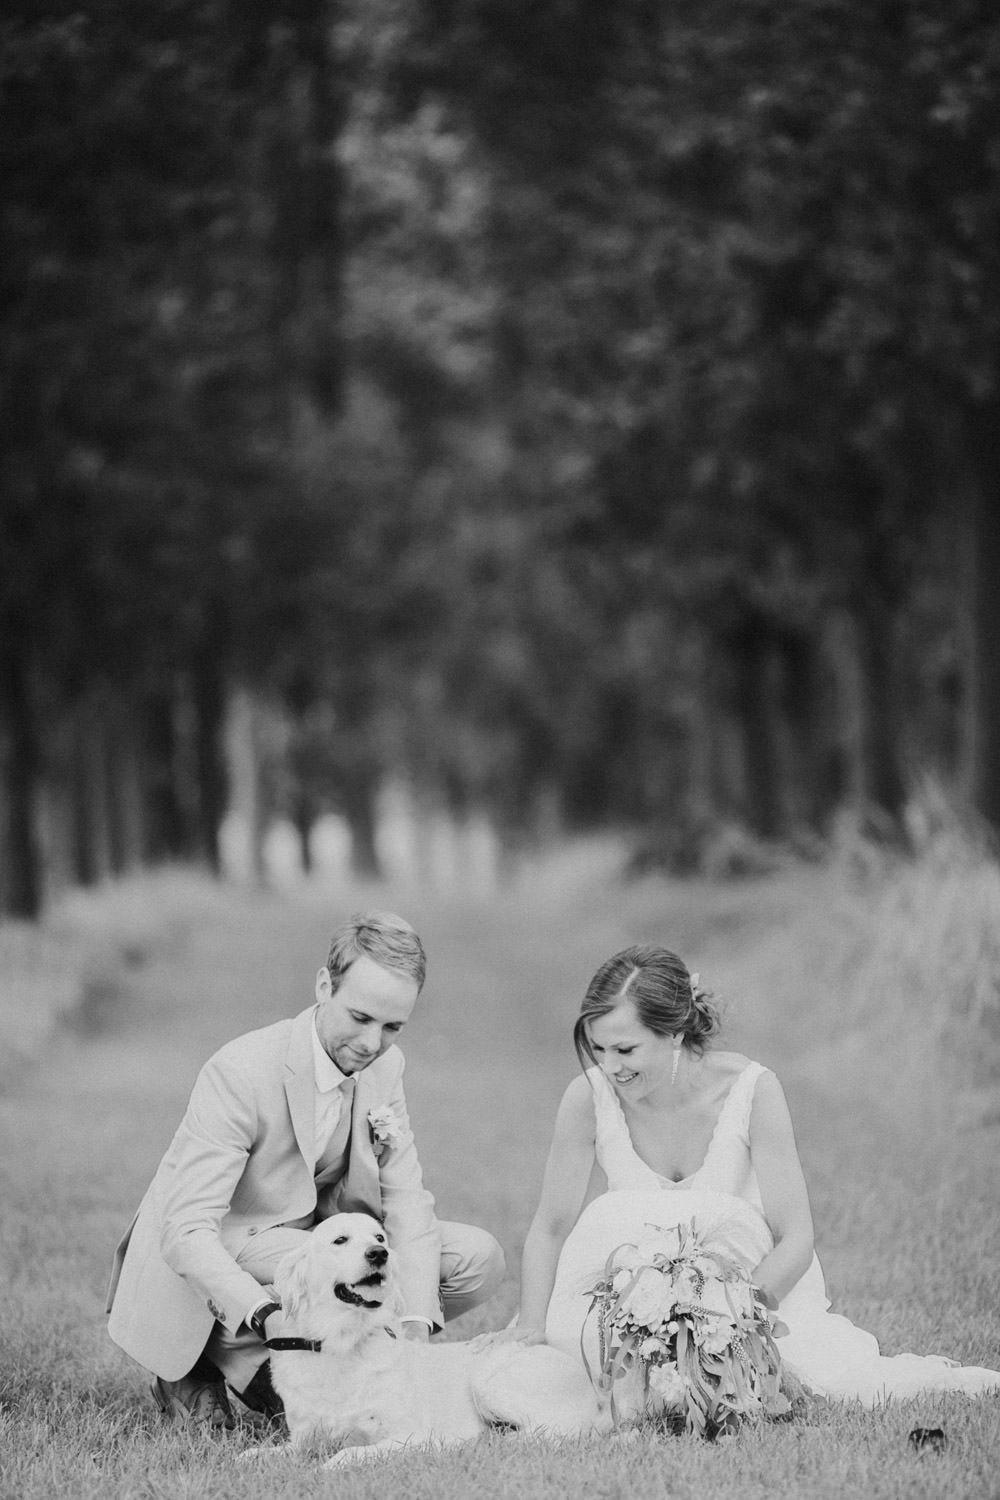 Wedding photographer Hoeve Engelendael, St-Laureins